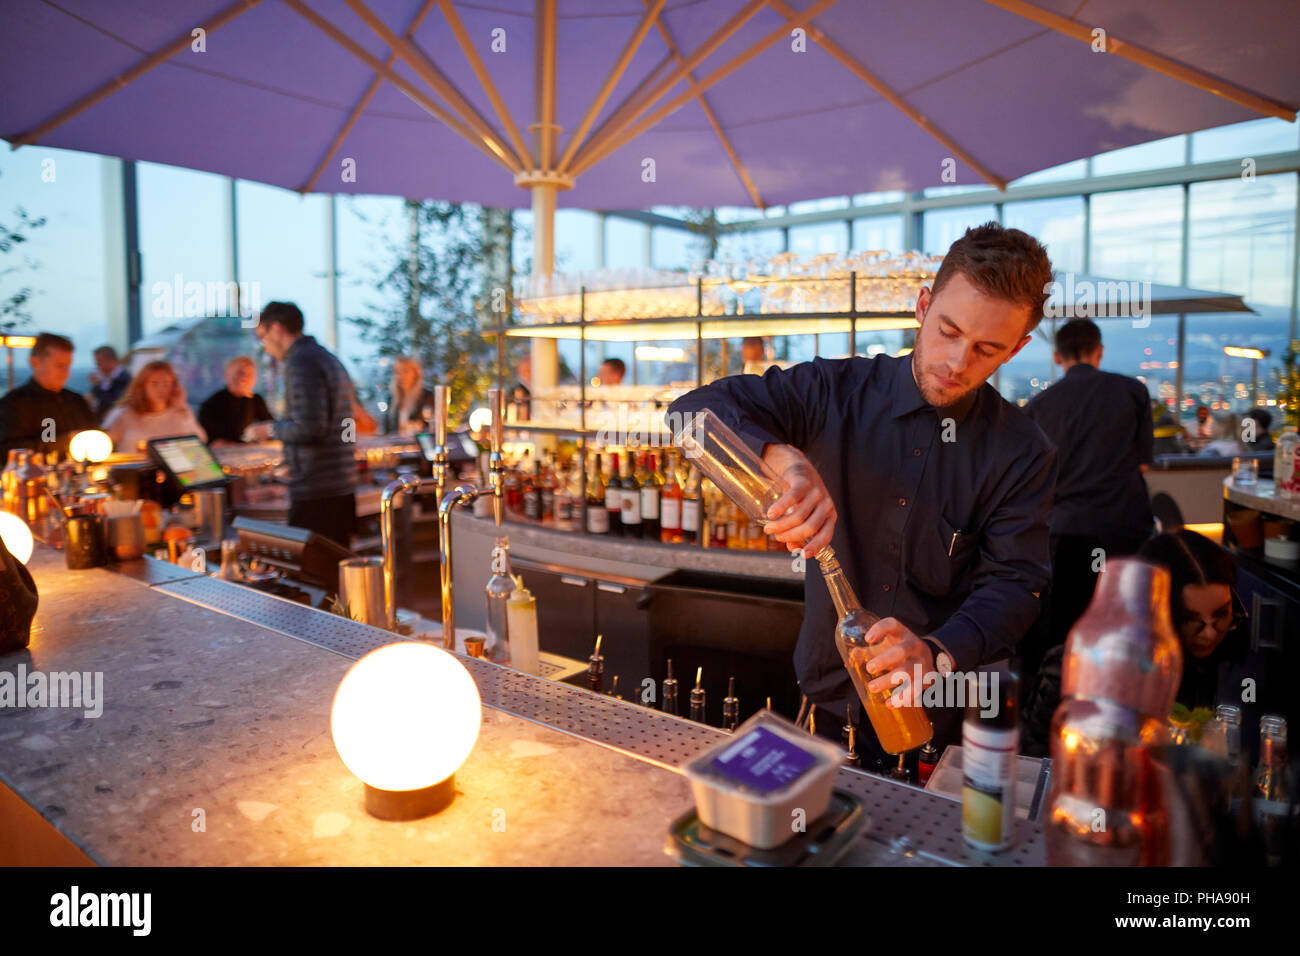 Situated 19th floor No.1 Spinningfields, 20 Stories glamorous restaurant lively bar expansive rooftop terrace unparalleled 360 degree views  Mancheste - Stock Image